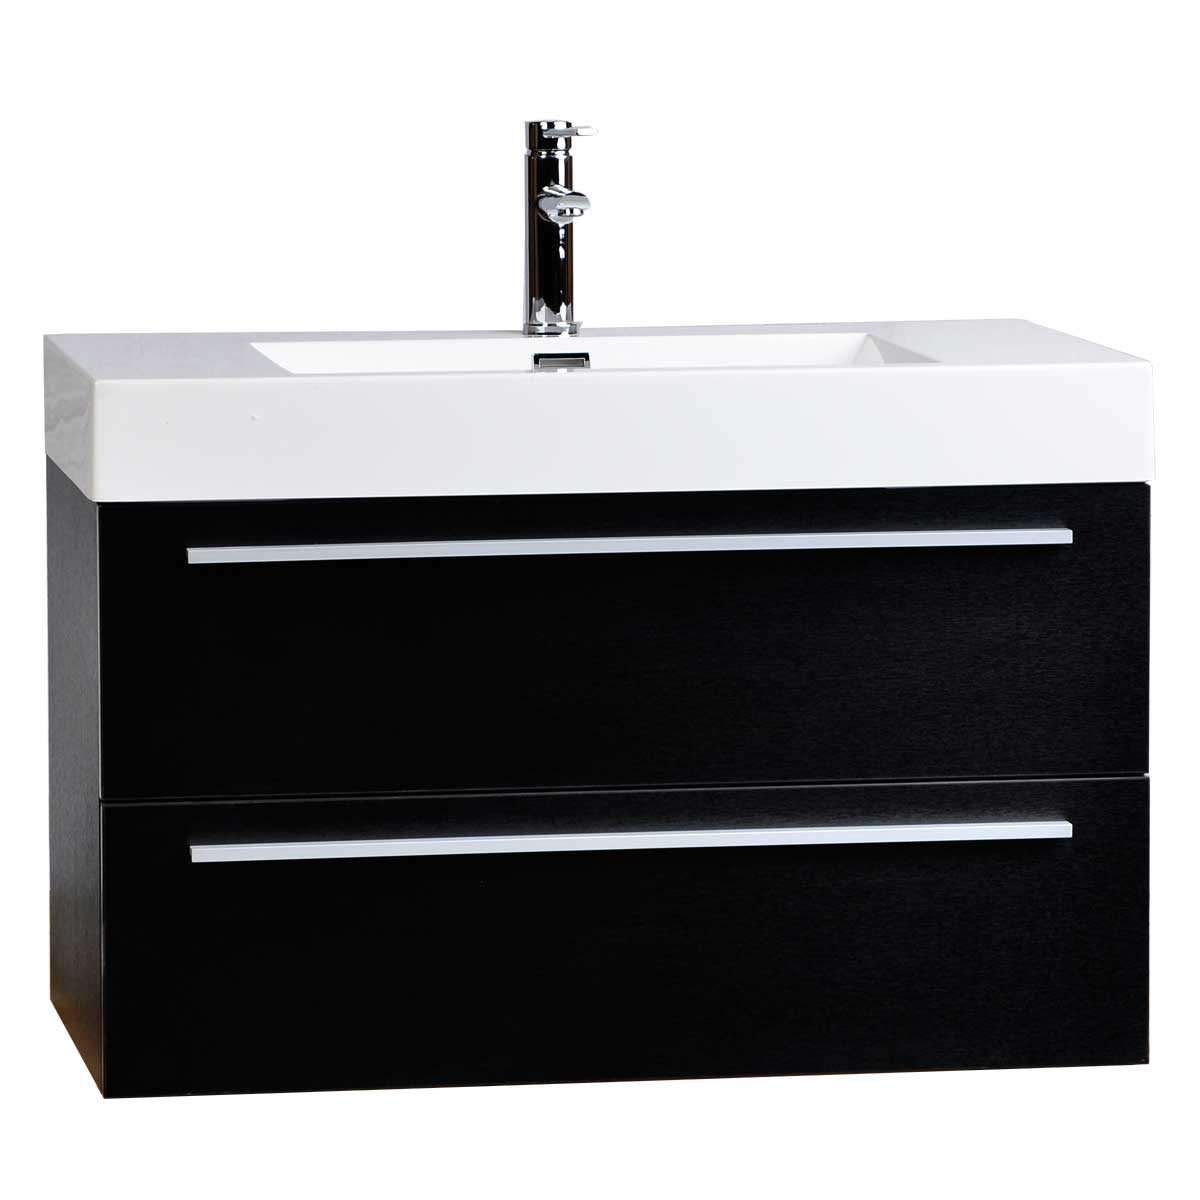 tn bk inch wall vanity mount vanities black bathroom walnut contemporary